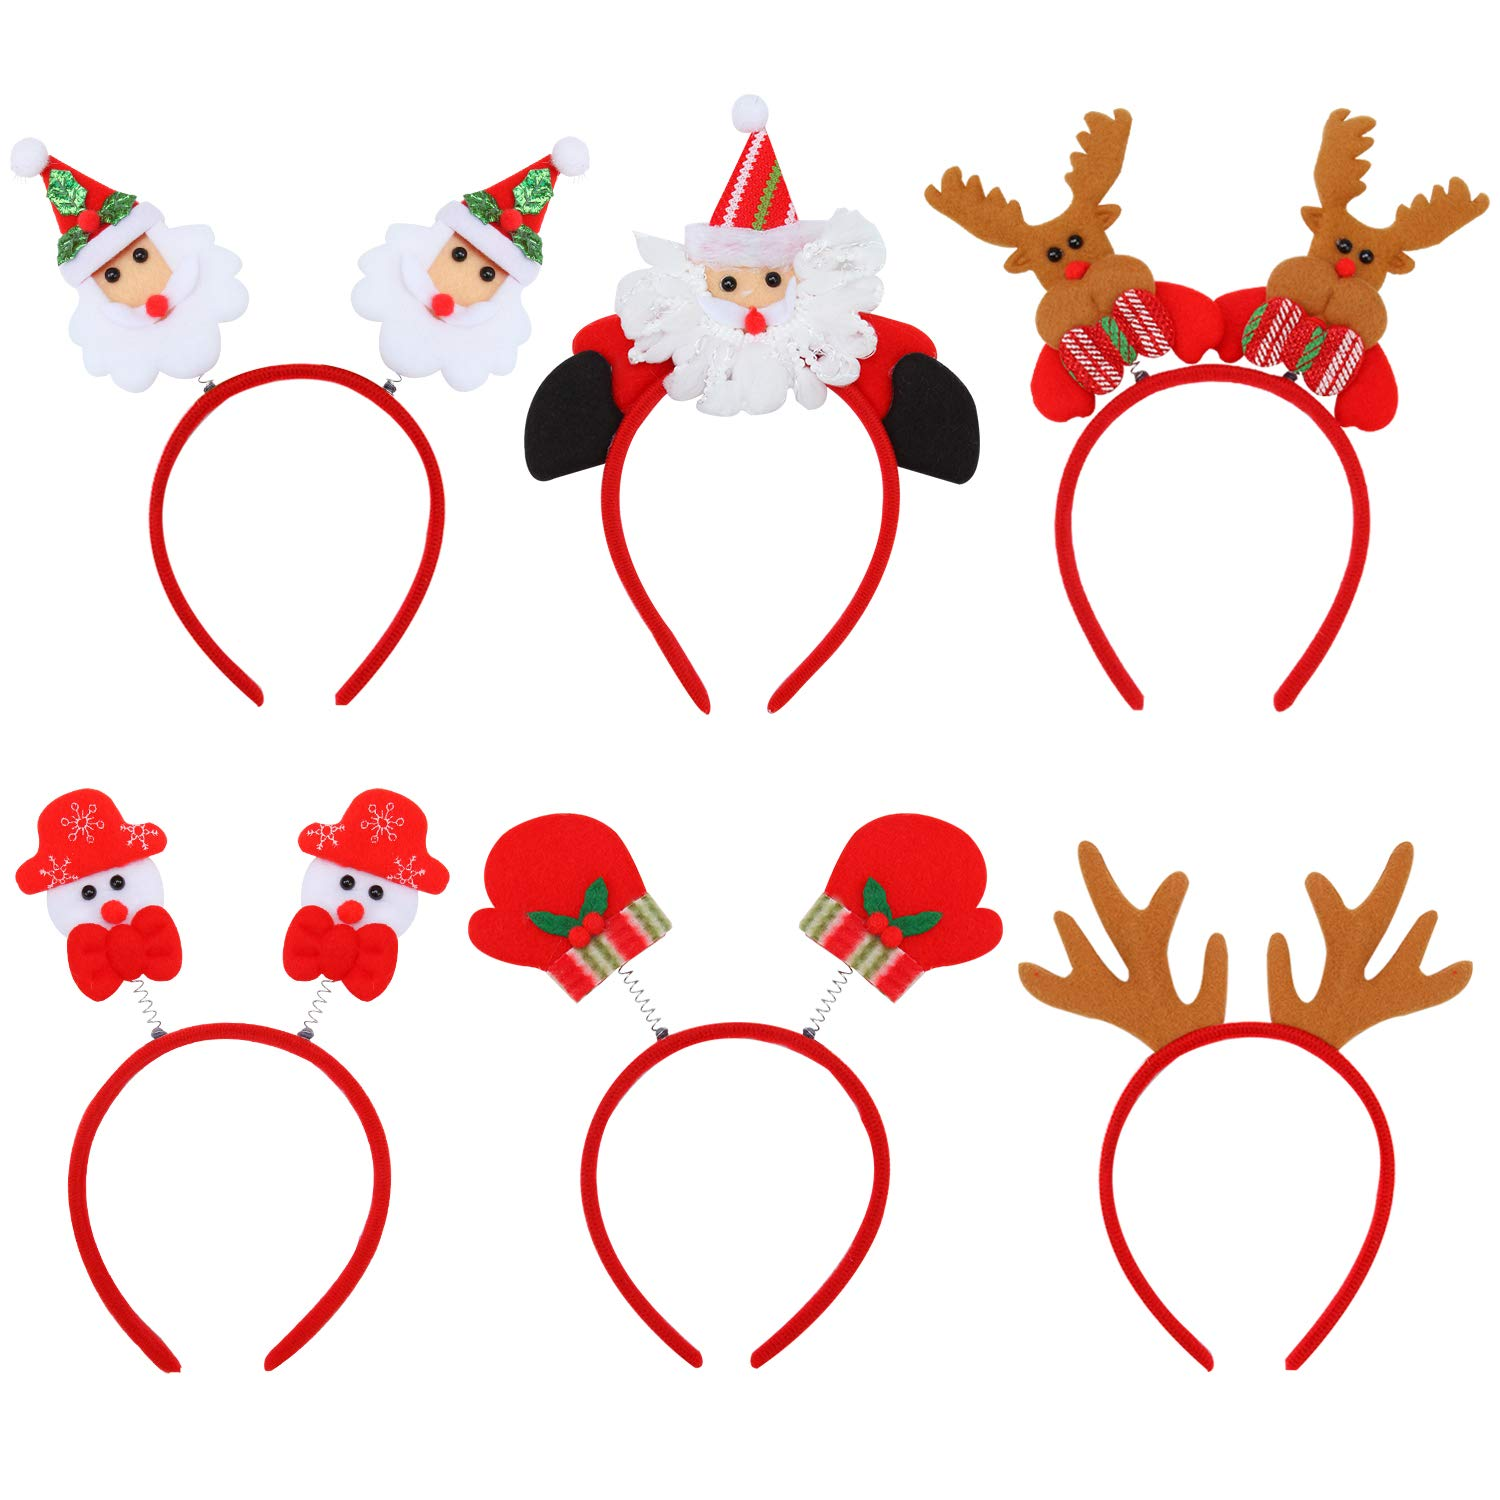 Aneco 6 Pack Christmas Santa Headbands Reindeer Antlers Headband Snowman Costume Hair Hoop for Christmas Holiday Party